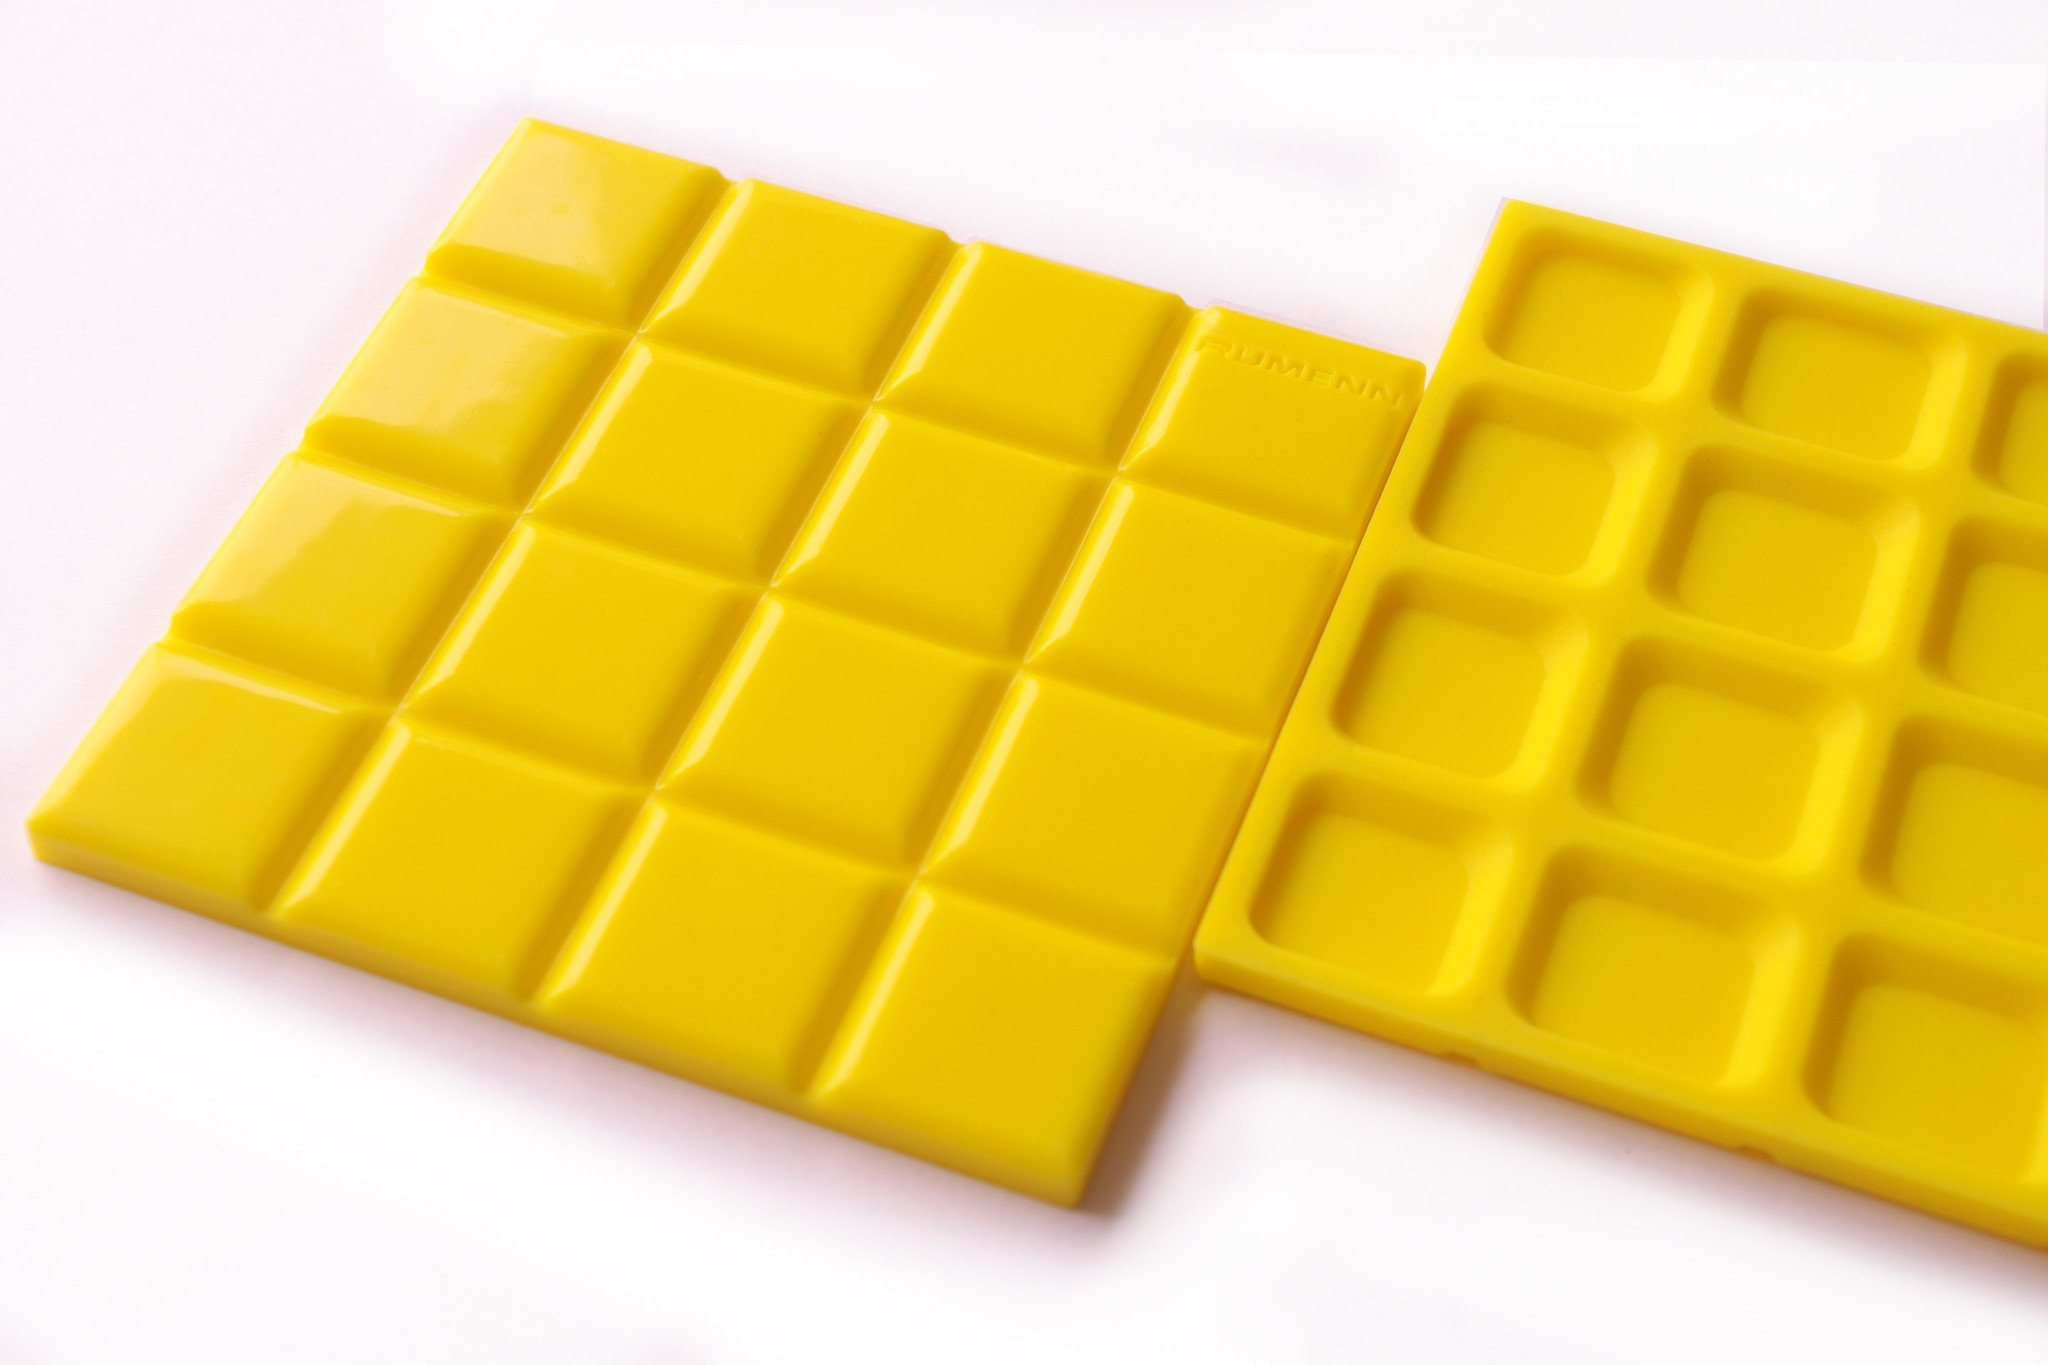 Mosaic Tile Rubber Coaster (Pack of 2) - Yellow - Naiise